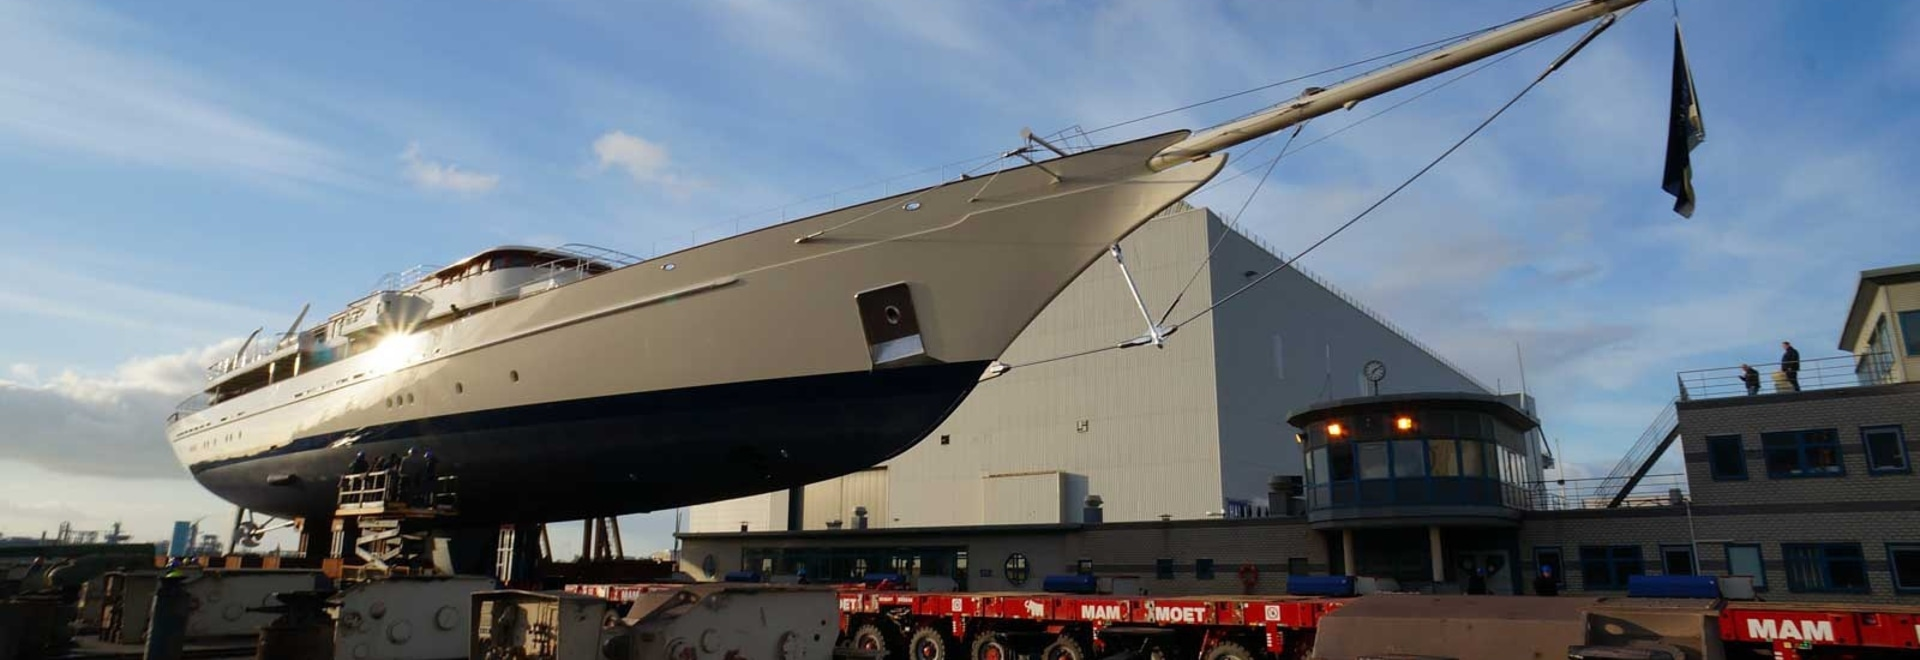 90m schooner Athena emerges gleaming from Royal Huisman after refit